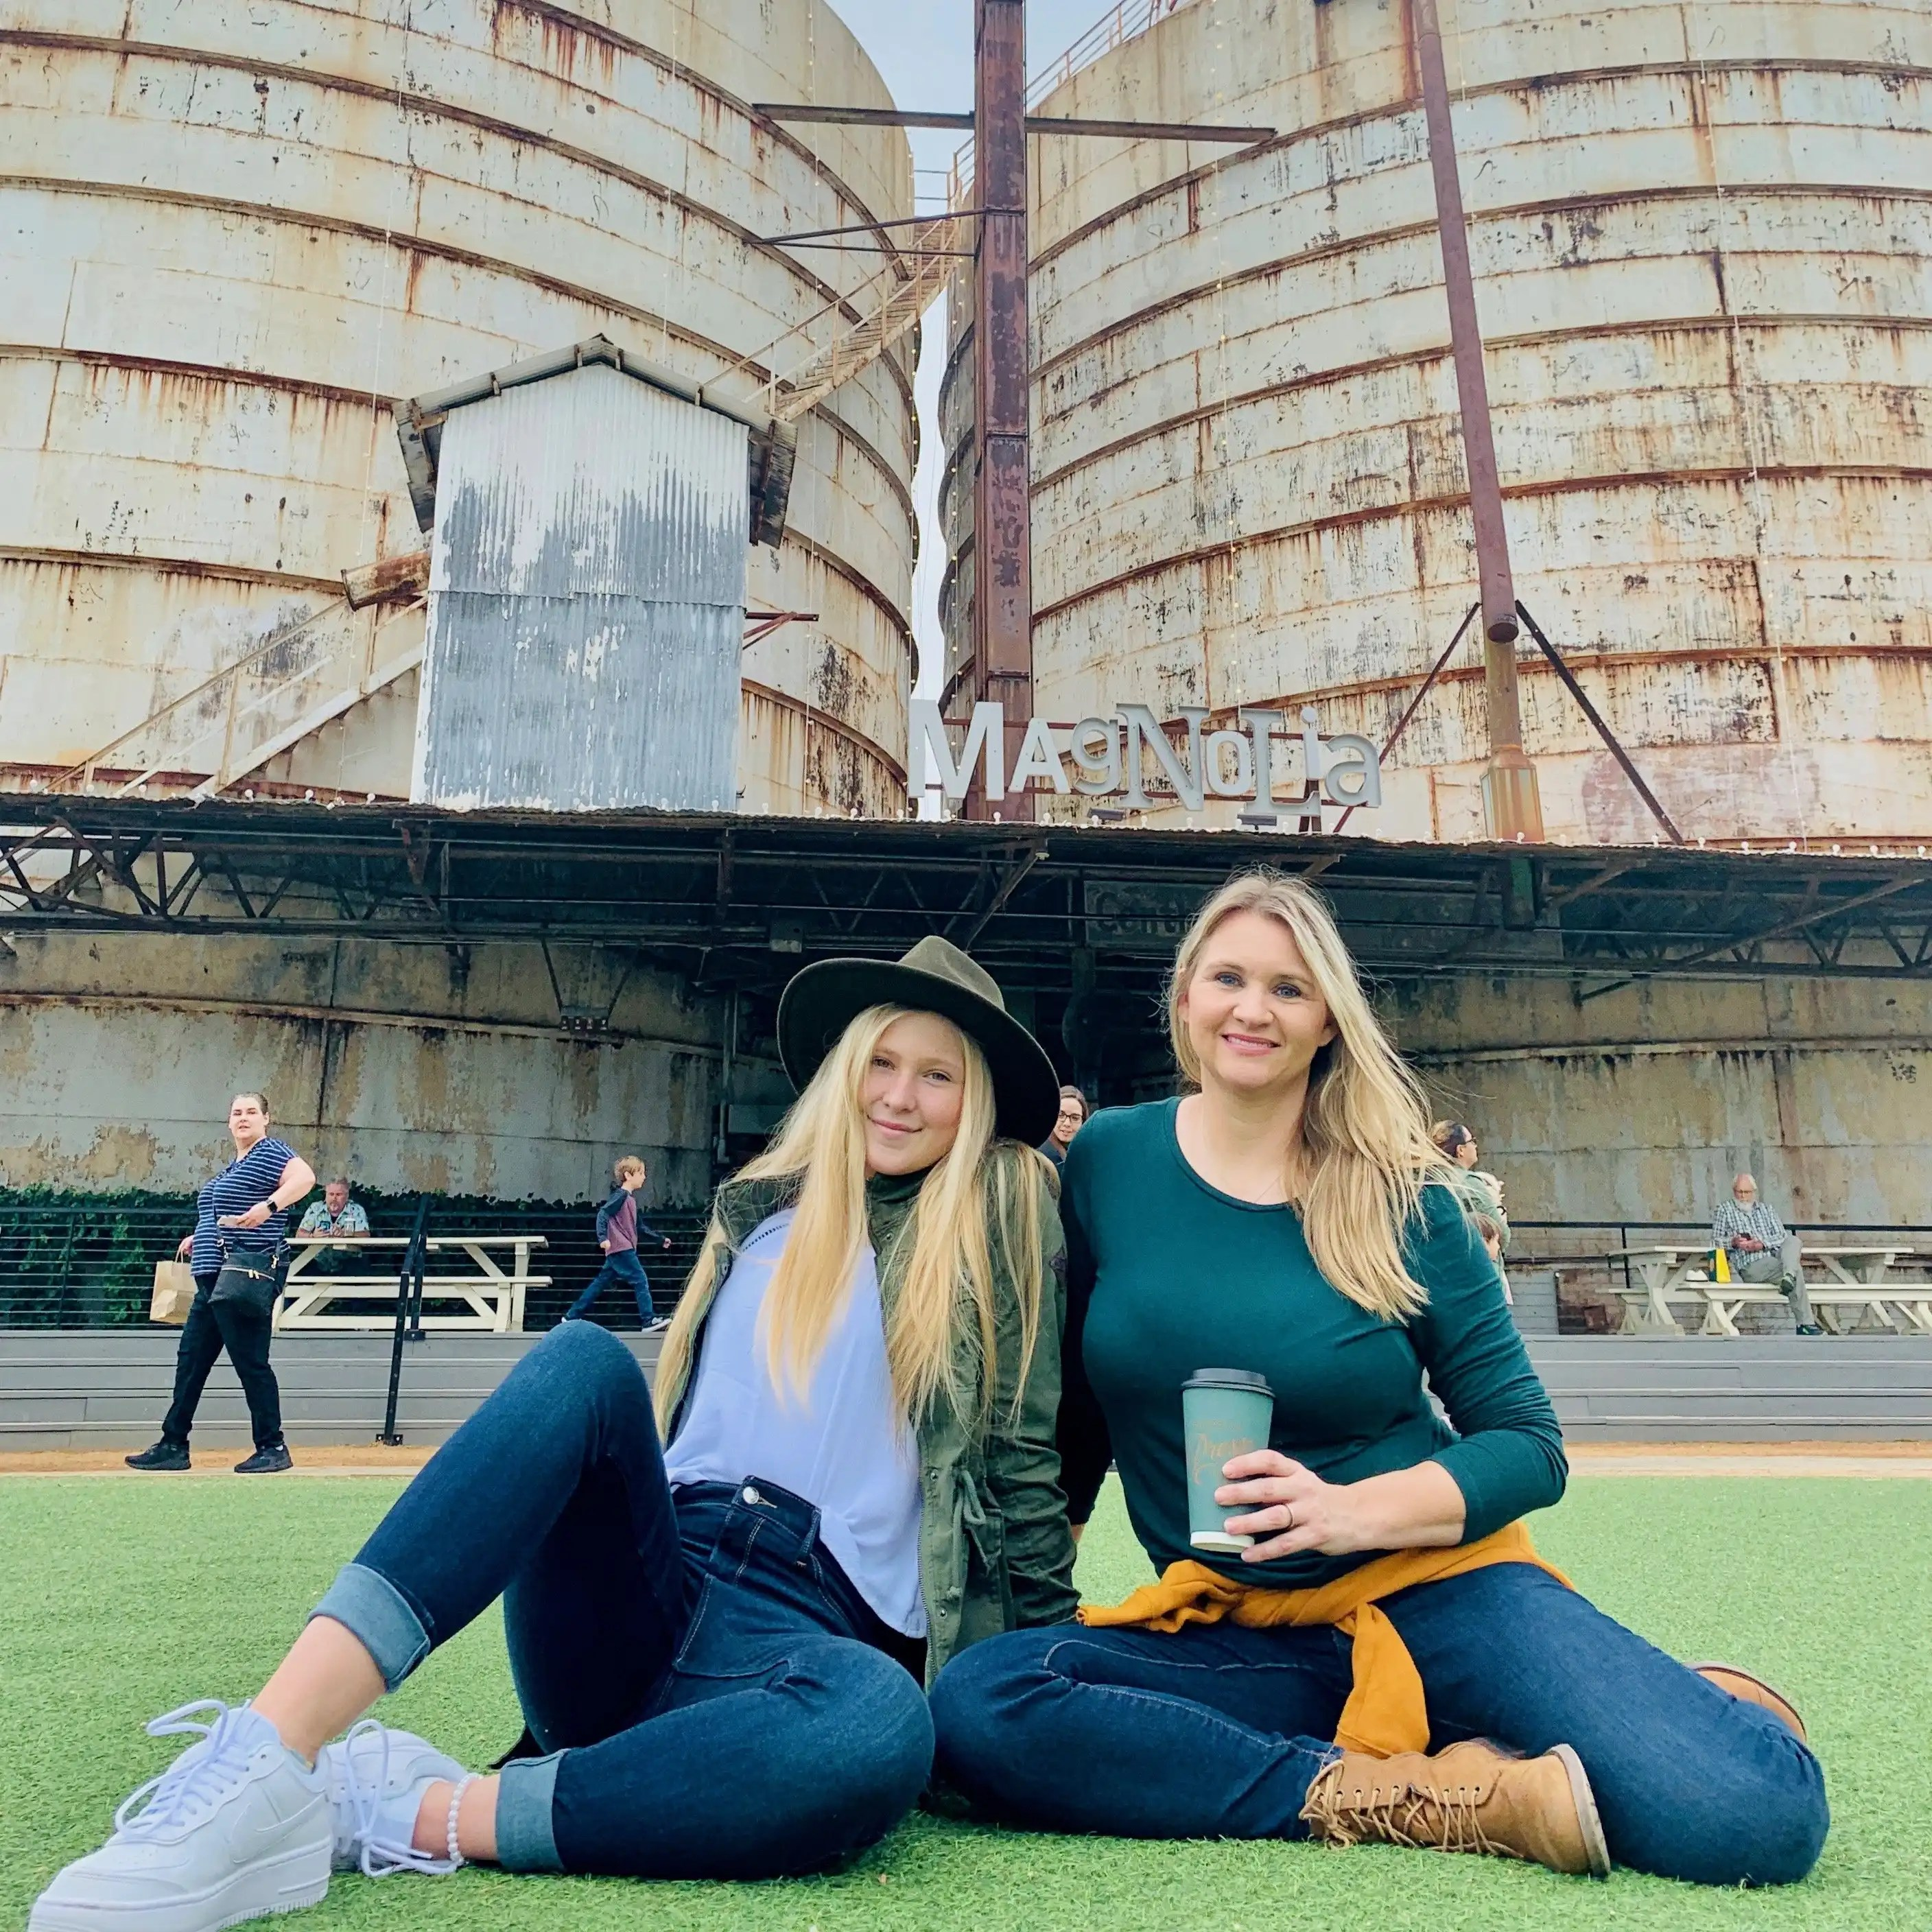 My daughter and I on the lawn at the Silos in Waco, Texas.